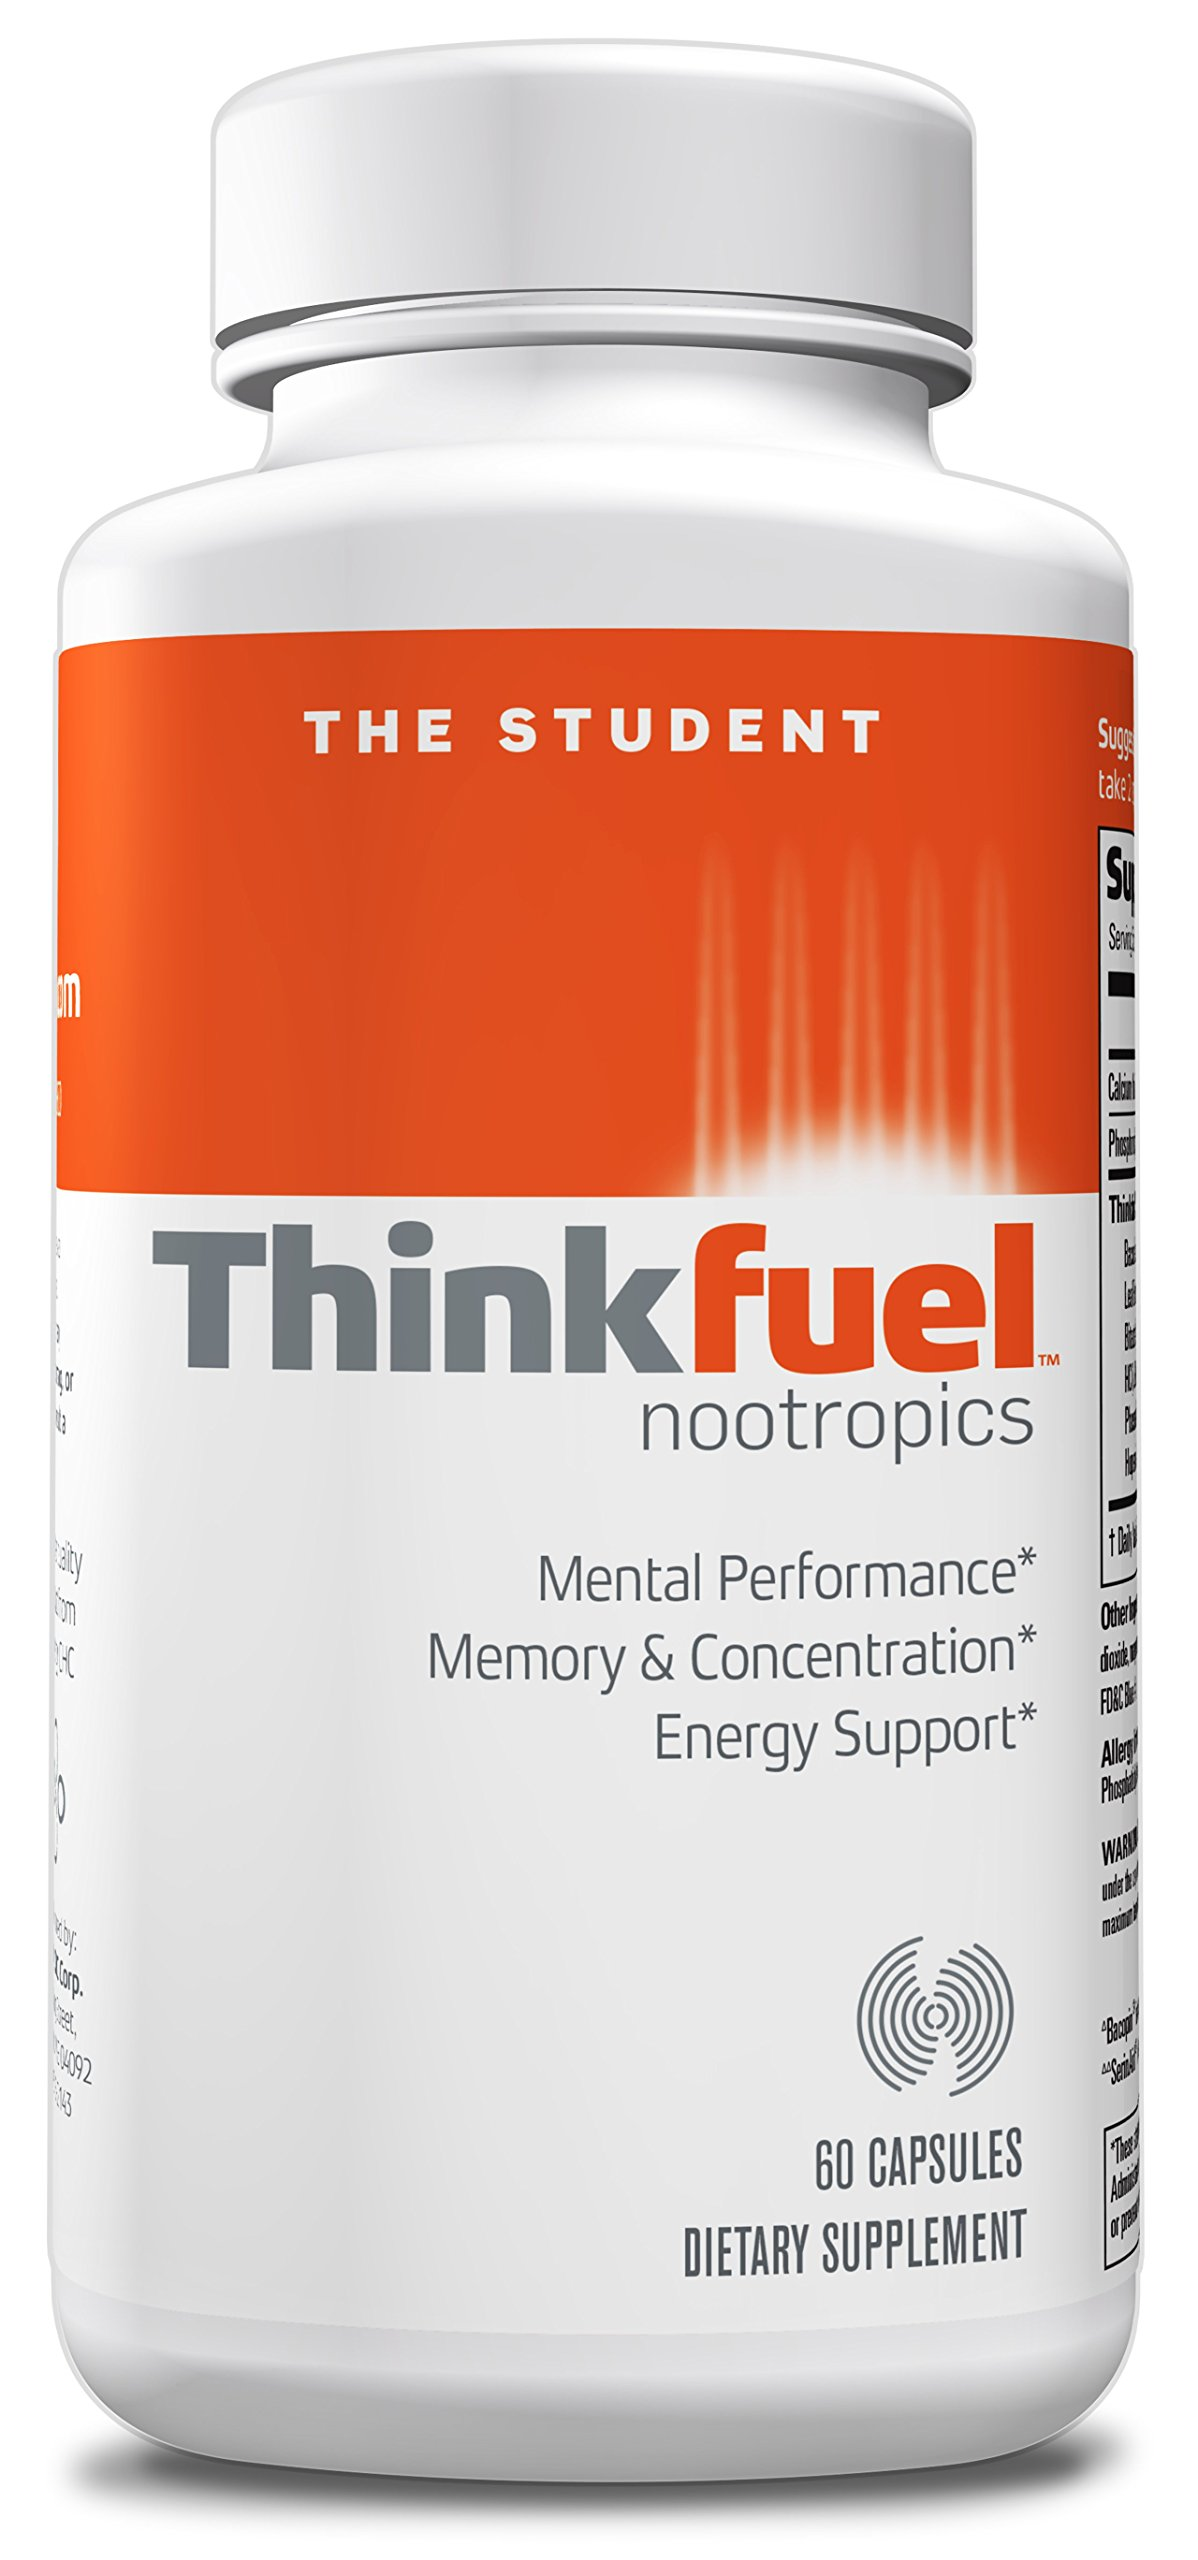 Thinkfuel For Students | Powerful Nootropic Dopamine Stack to Boost Memory, Concentration & Energy w/ DMAE, Ginkgo Biloba, L- Glutamine, and Caffeine. (60 Capsules) by Focus Factor